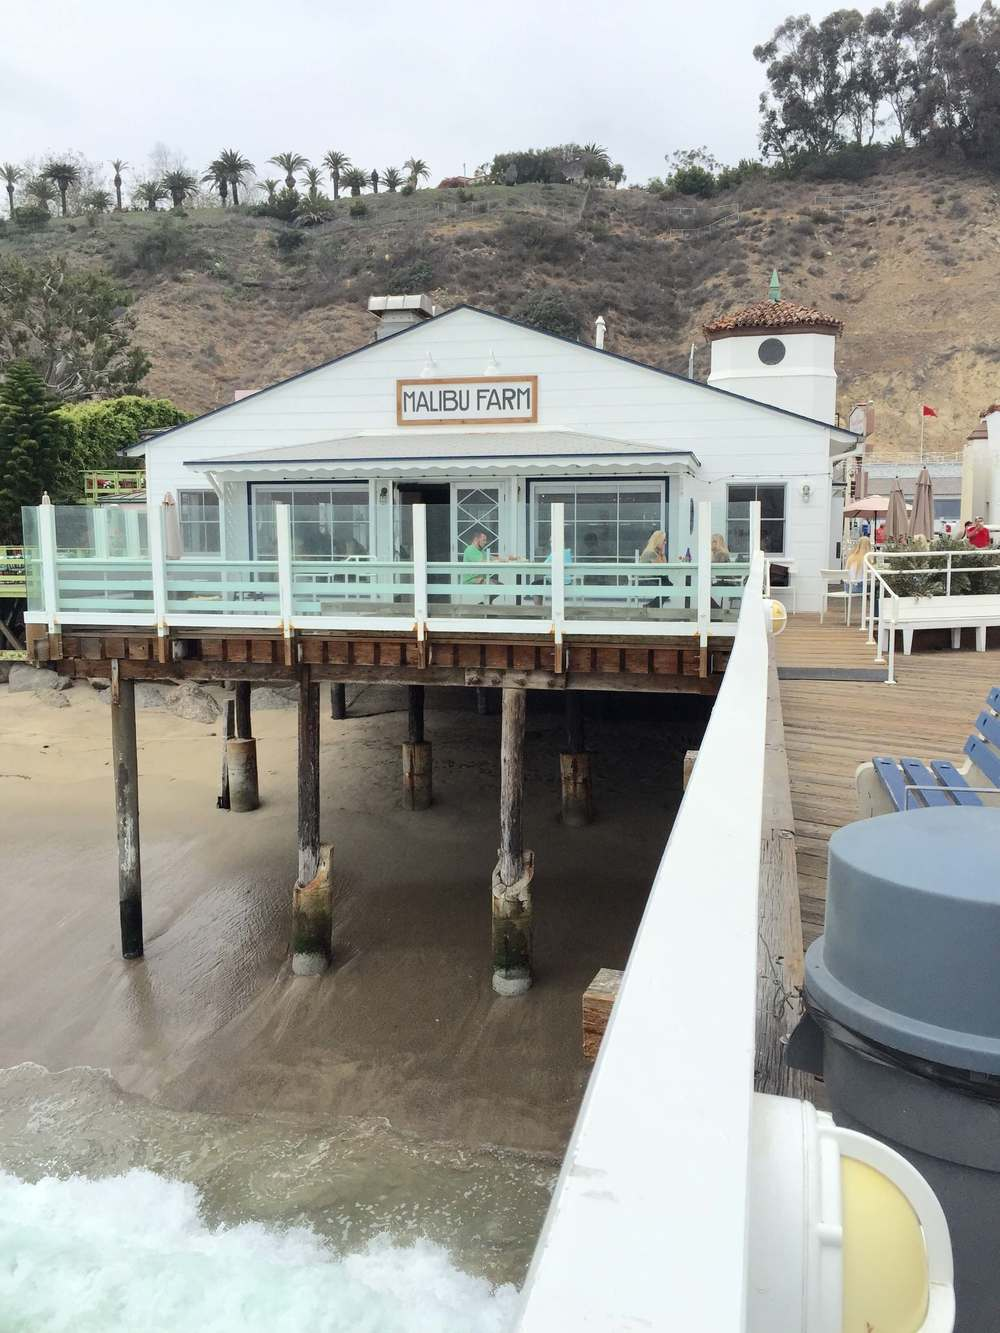 Malibu Farms on Malibu Pier